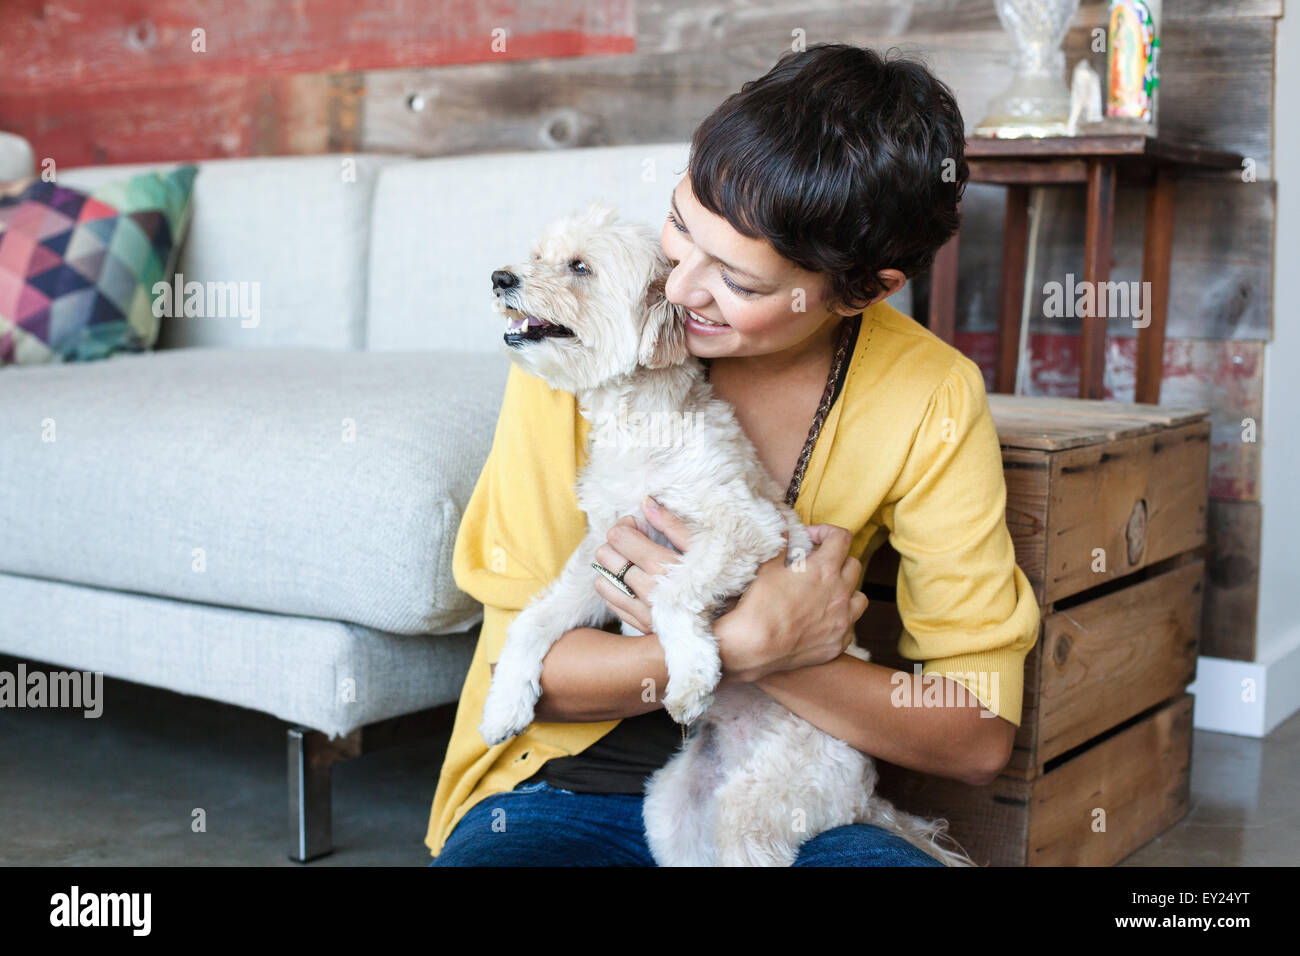 Young woman hugging dog on living room floor - Stock Image